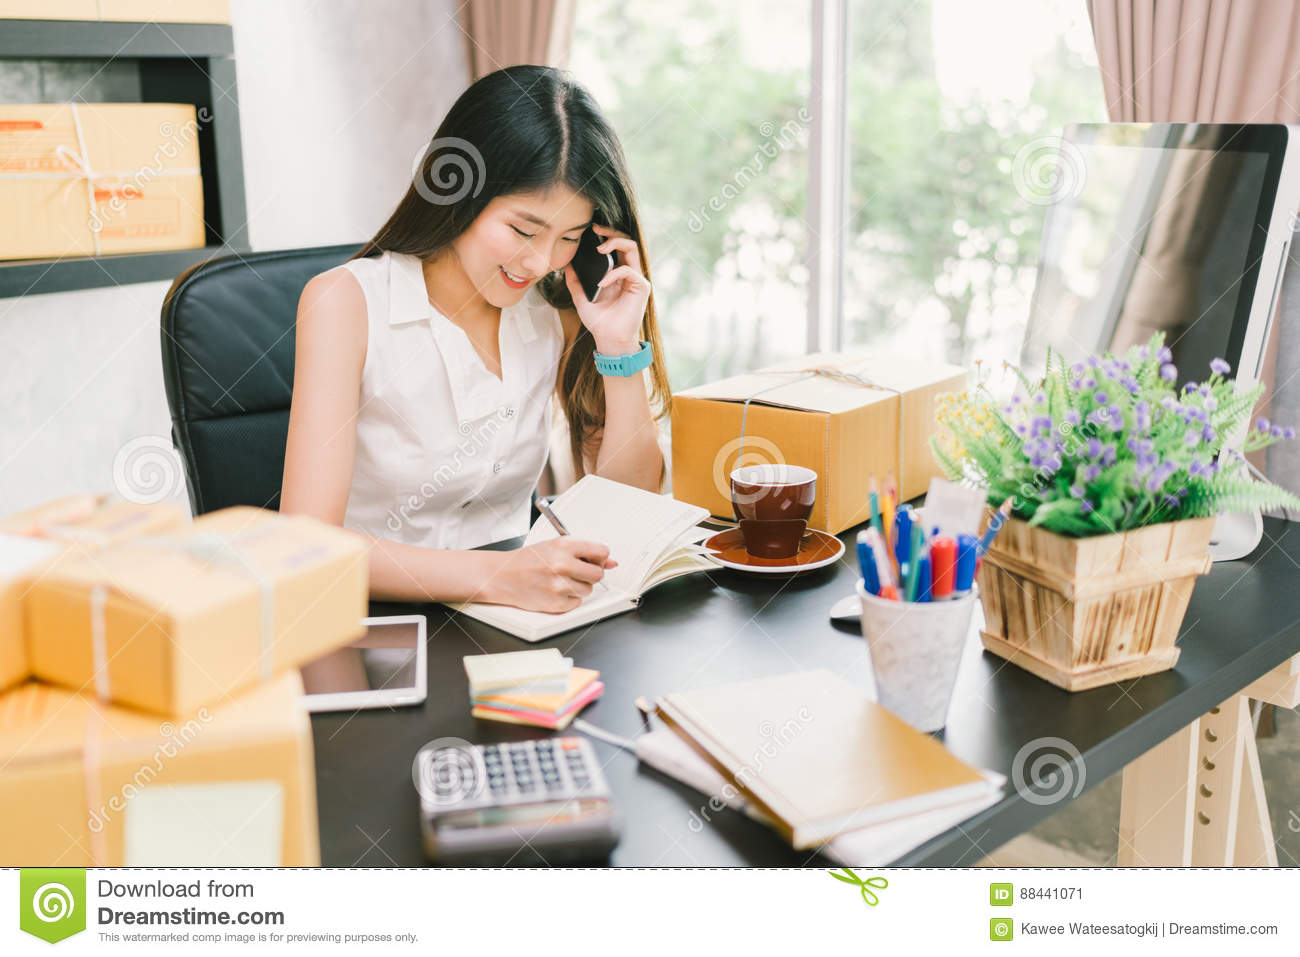 Young Asian small business owner working at home office, using mobile phone and taking note on purchase orders